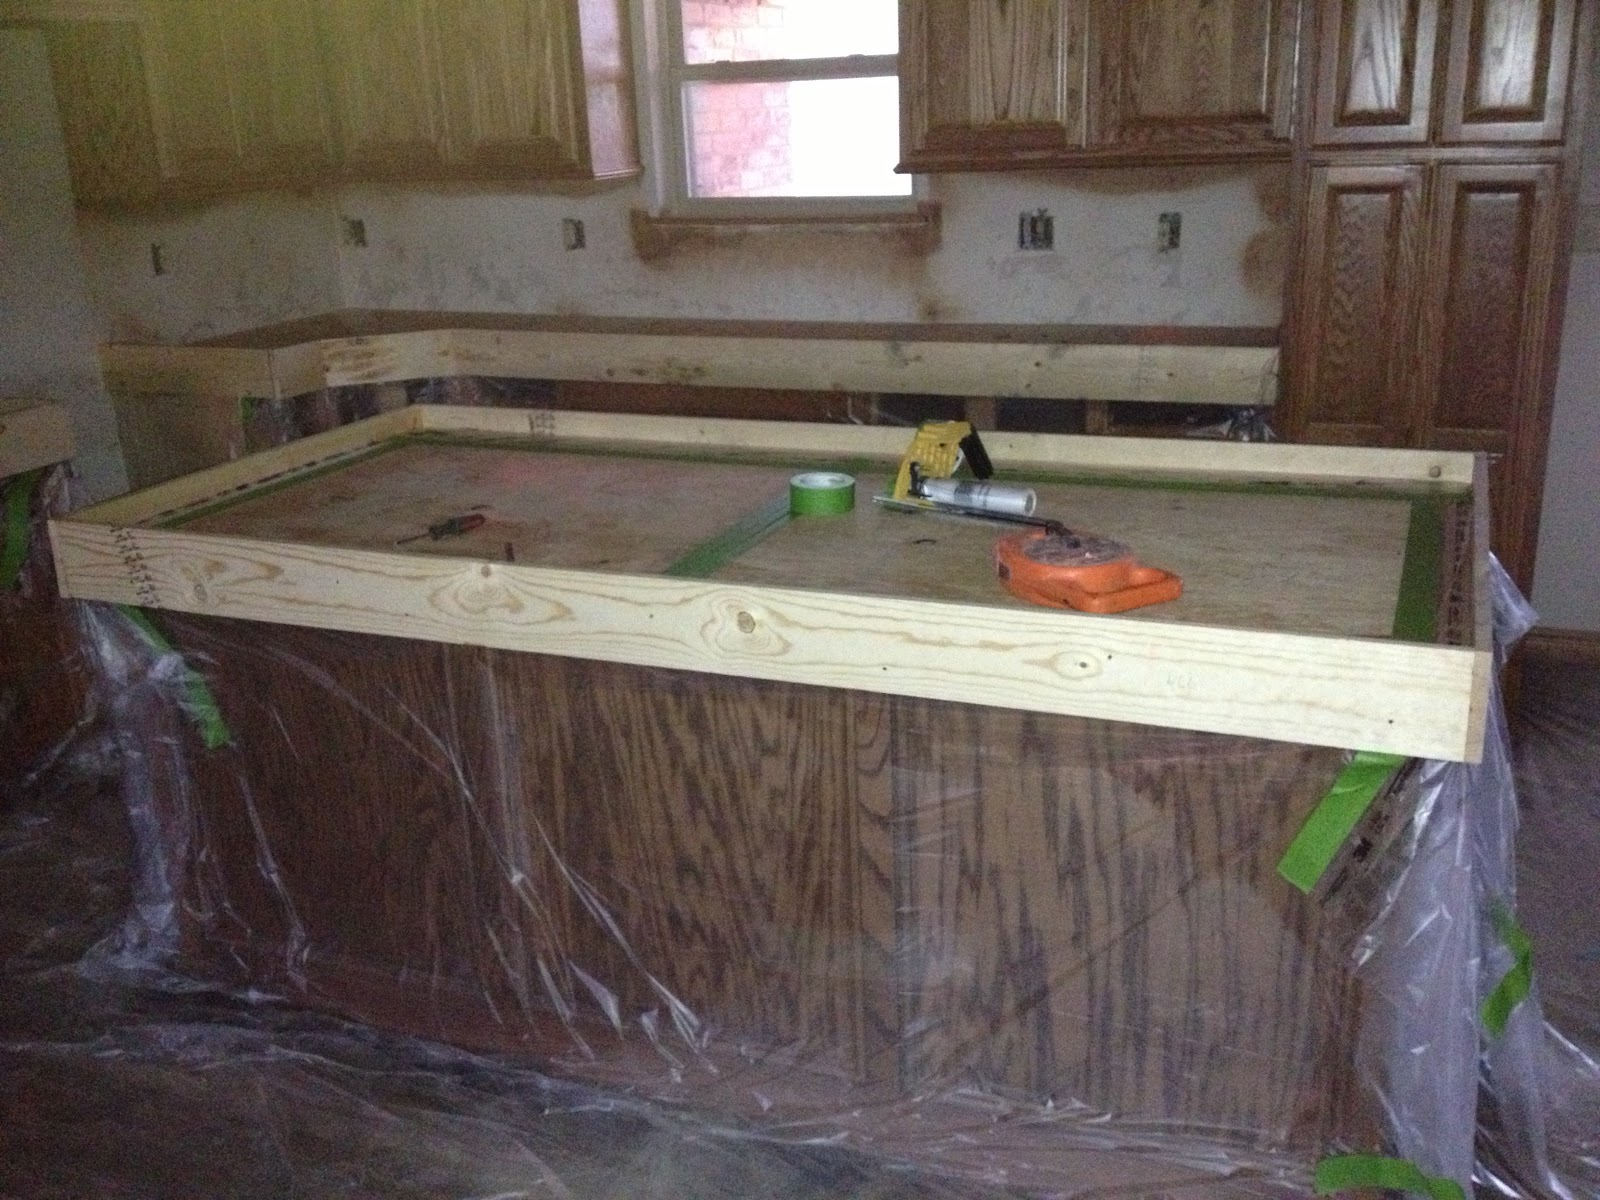 All The Cabinets Were Draped In Plastic And Taped Off, So Not To Get Any  Concrete, Stain Or Sealer On Them.